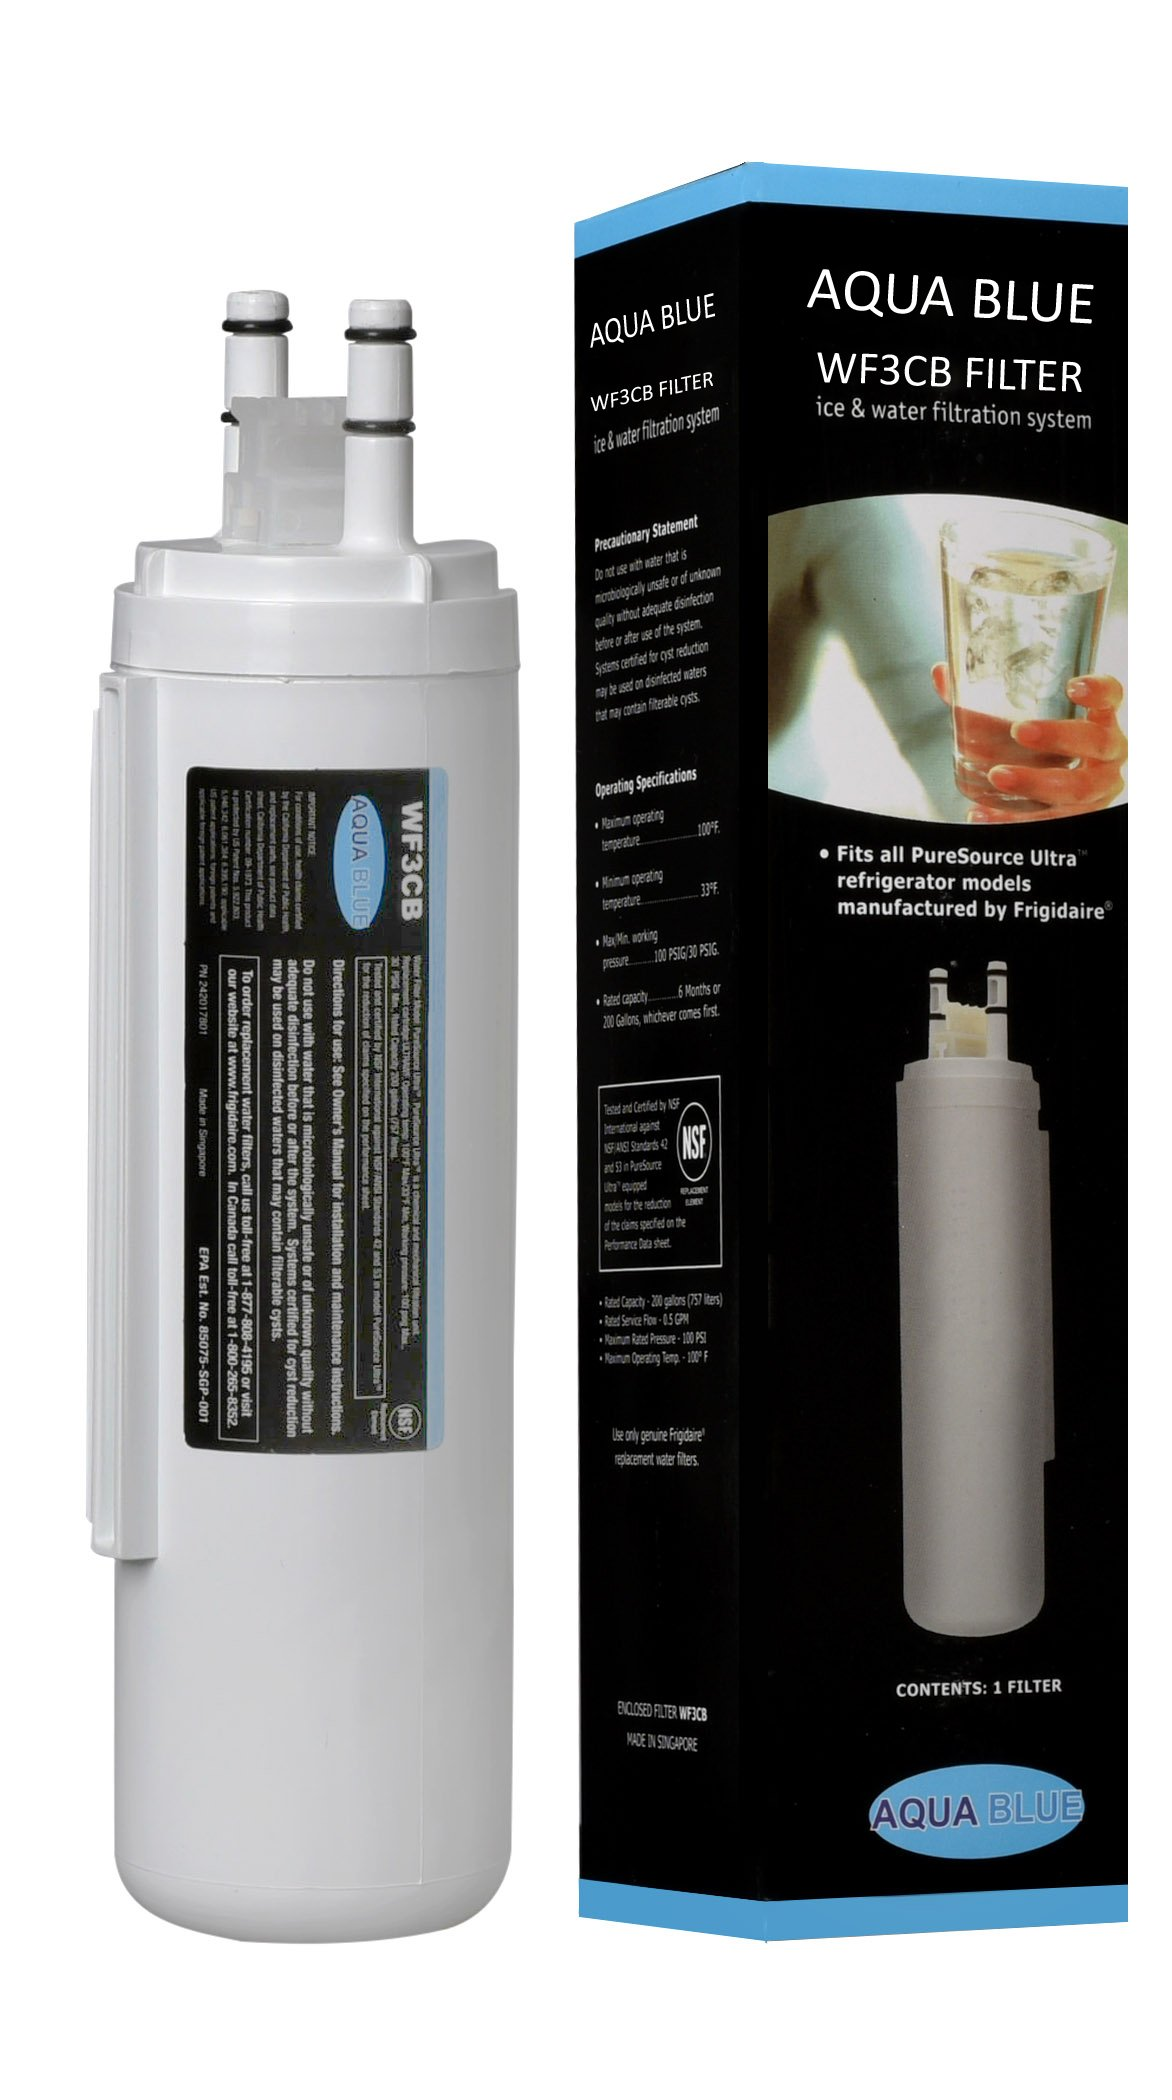 Aqua Blue WF3CB Filter Compatible For Frigidaire Refrigerator Replacement Water Filter Nsf Certified (NOT ULTRAWF)